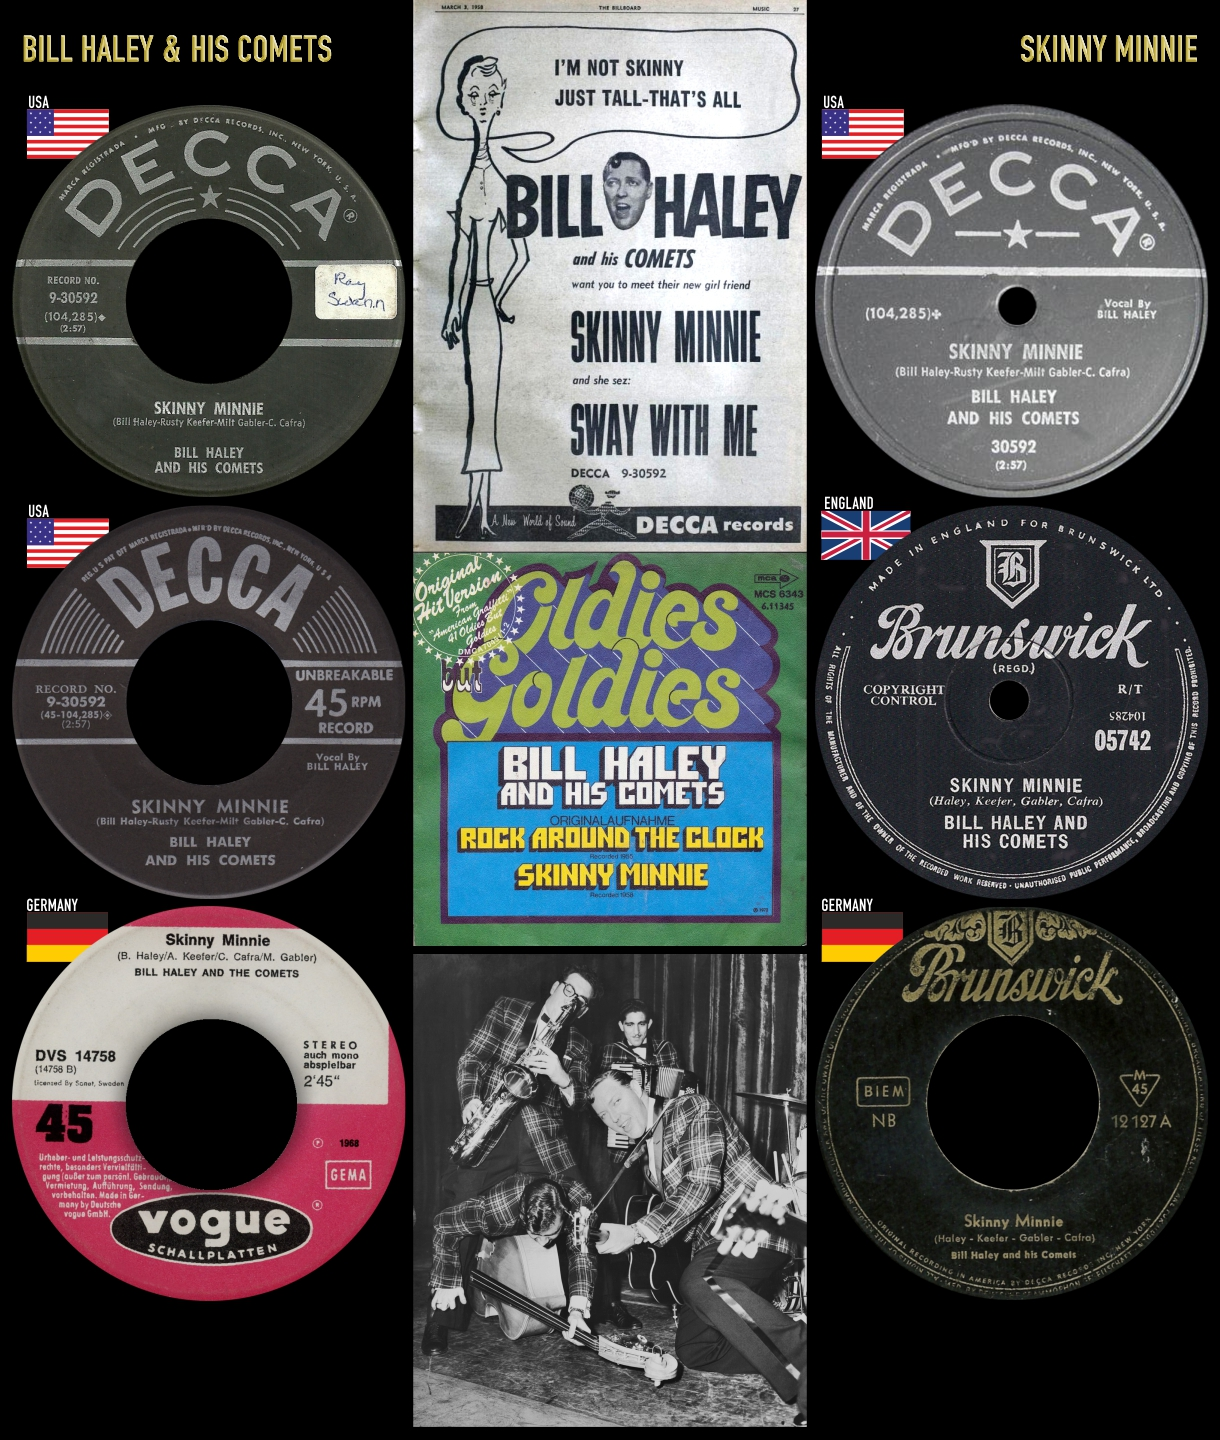 580412_Bill Haley_Skinny Minnie